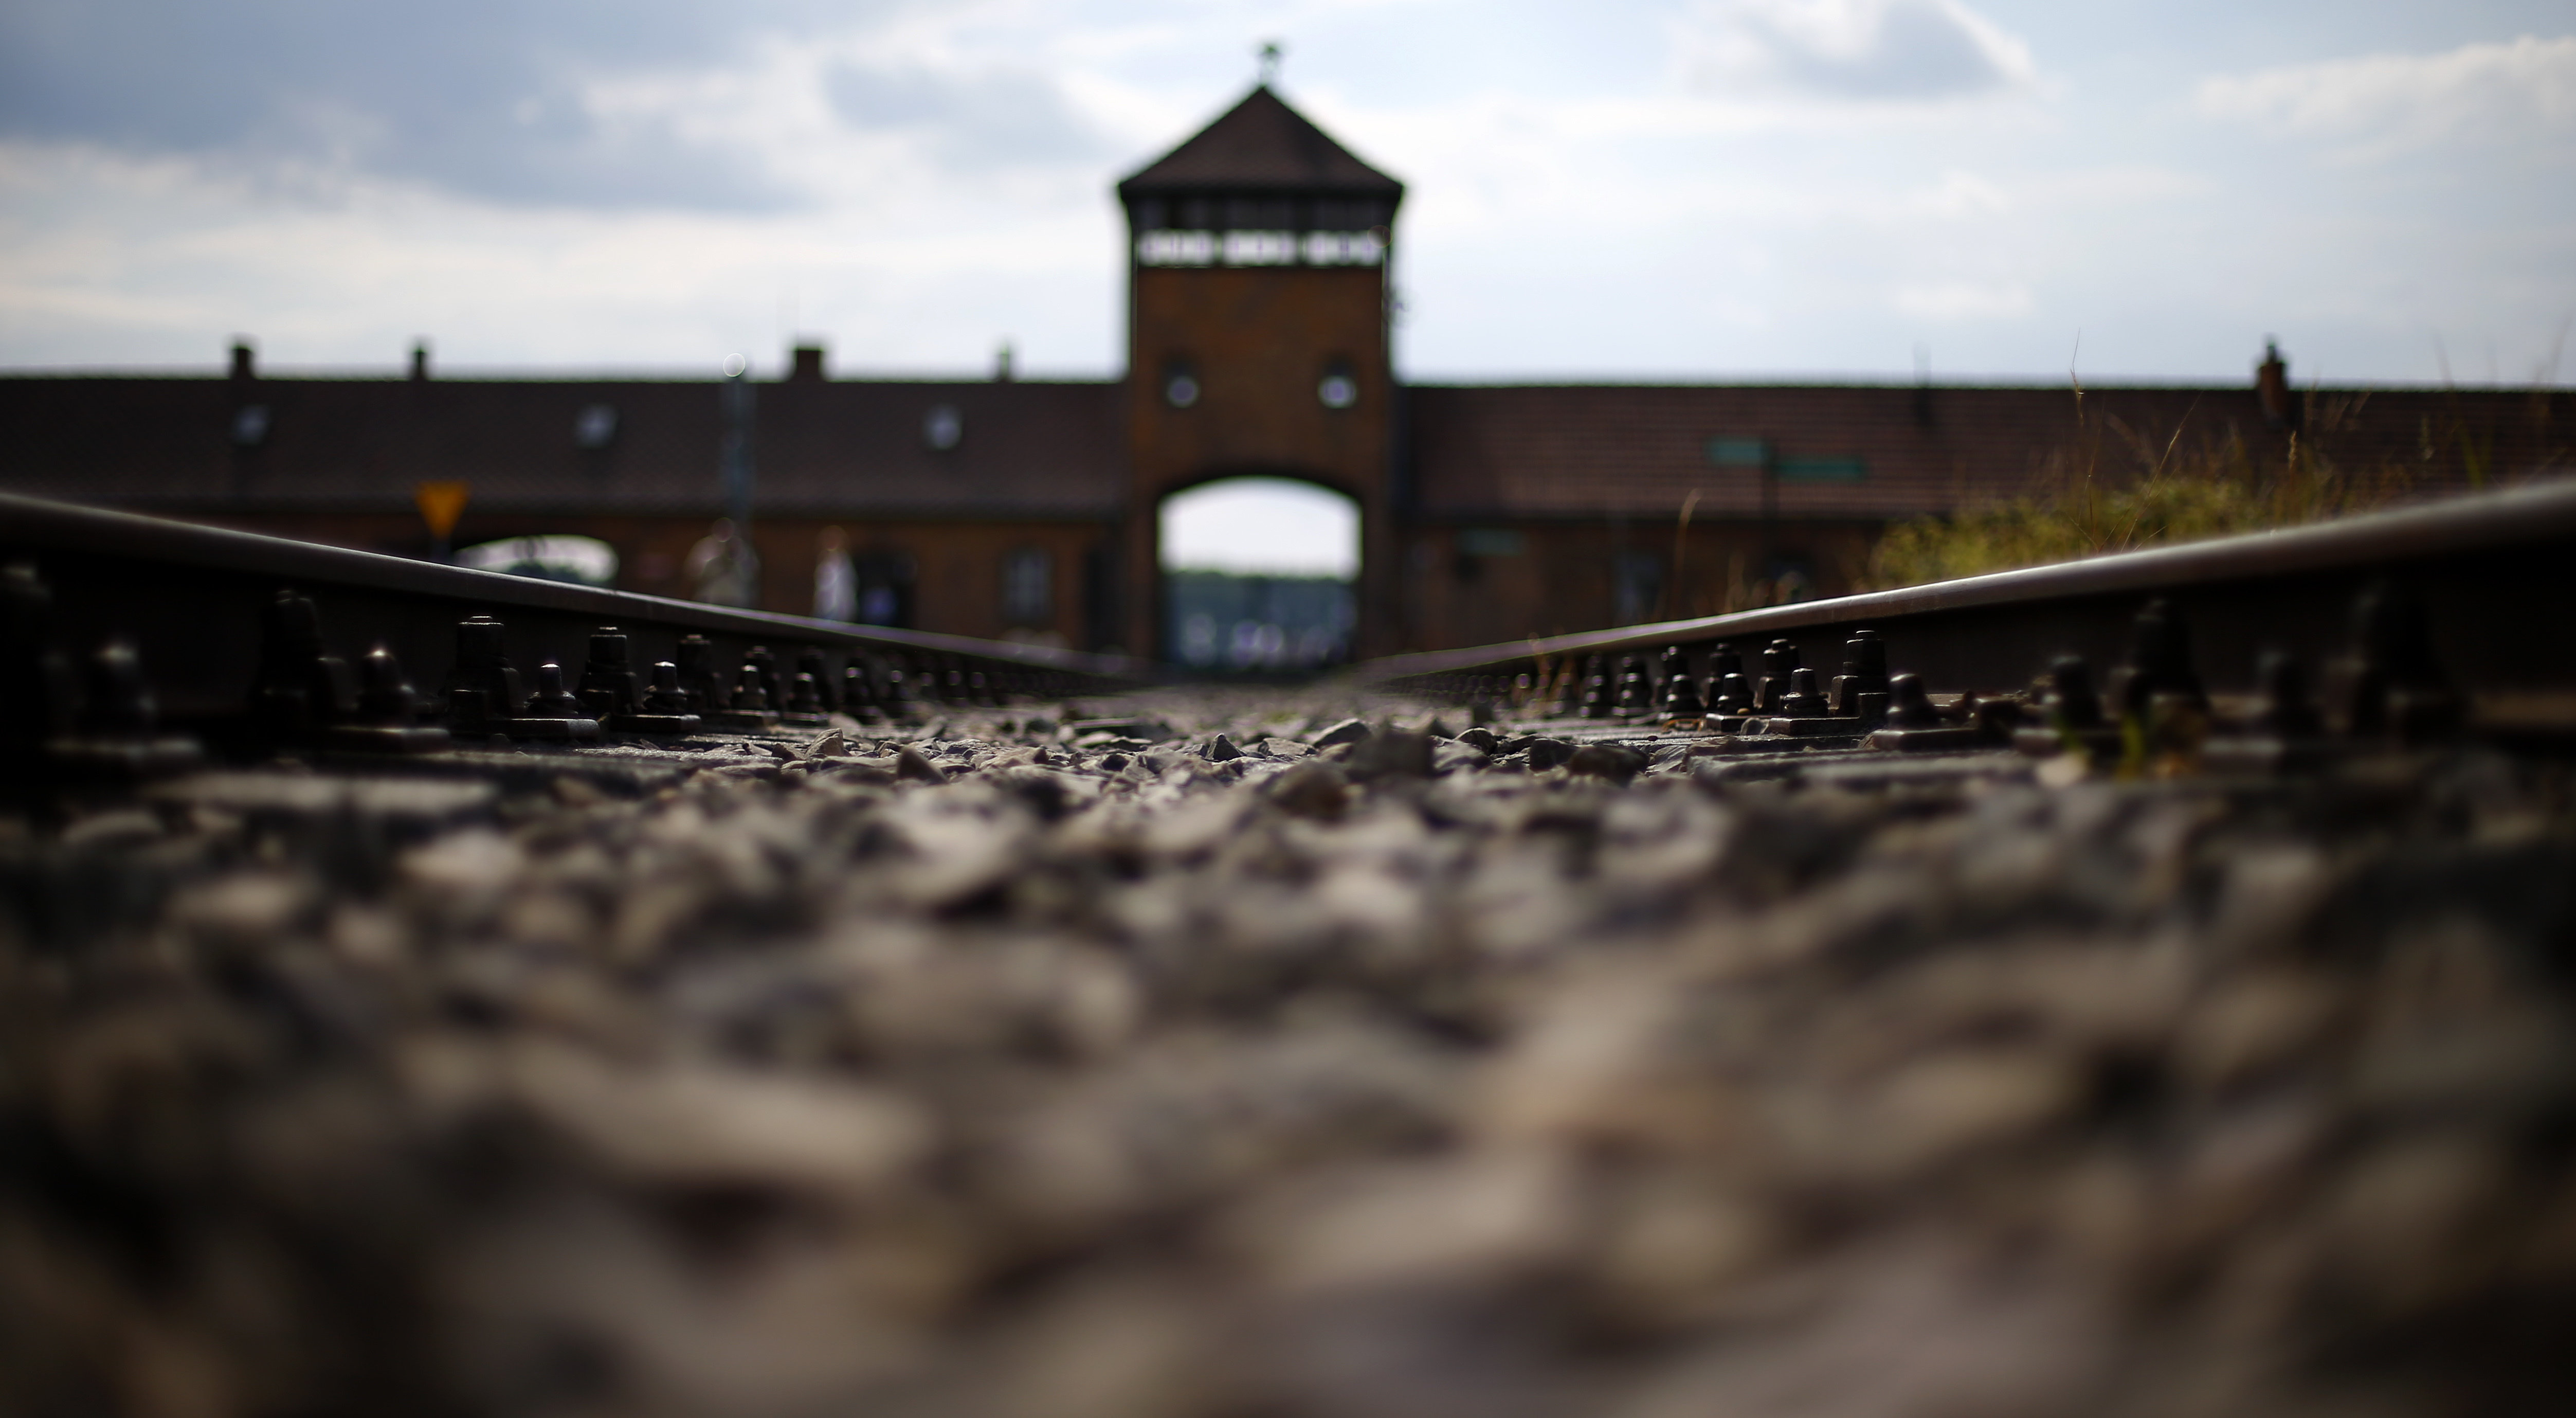 FILE - In this June 25, 2015 file photo railway tracks lie in front of the main entrance of former Auschwitz-Birkenau Nazi death camp in Oswiecim, Poland. Poland's Senate has backed legislation regulating Holocaust speech, calling for up to three years in prison for any intentional attempt to falsely attribute the crimes of Nazi Germany to the Polish state or people.  (AP Photo/Matthias Schrader, file)